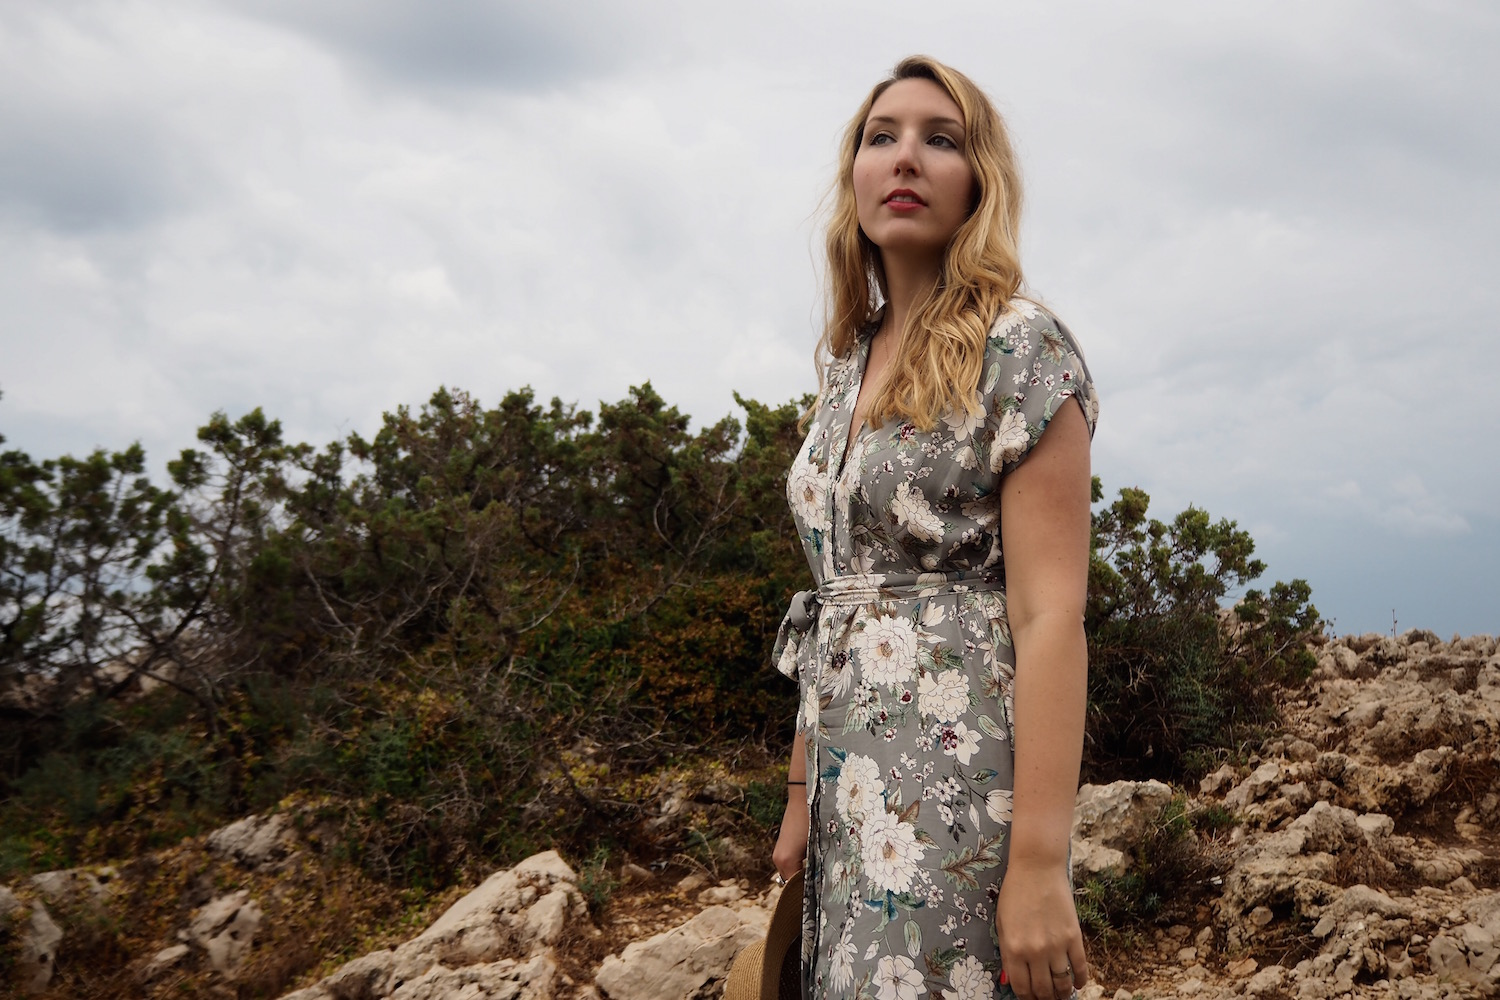 A magical vintage-style floral dress by Zara